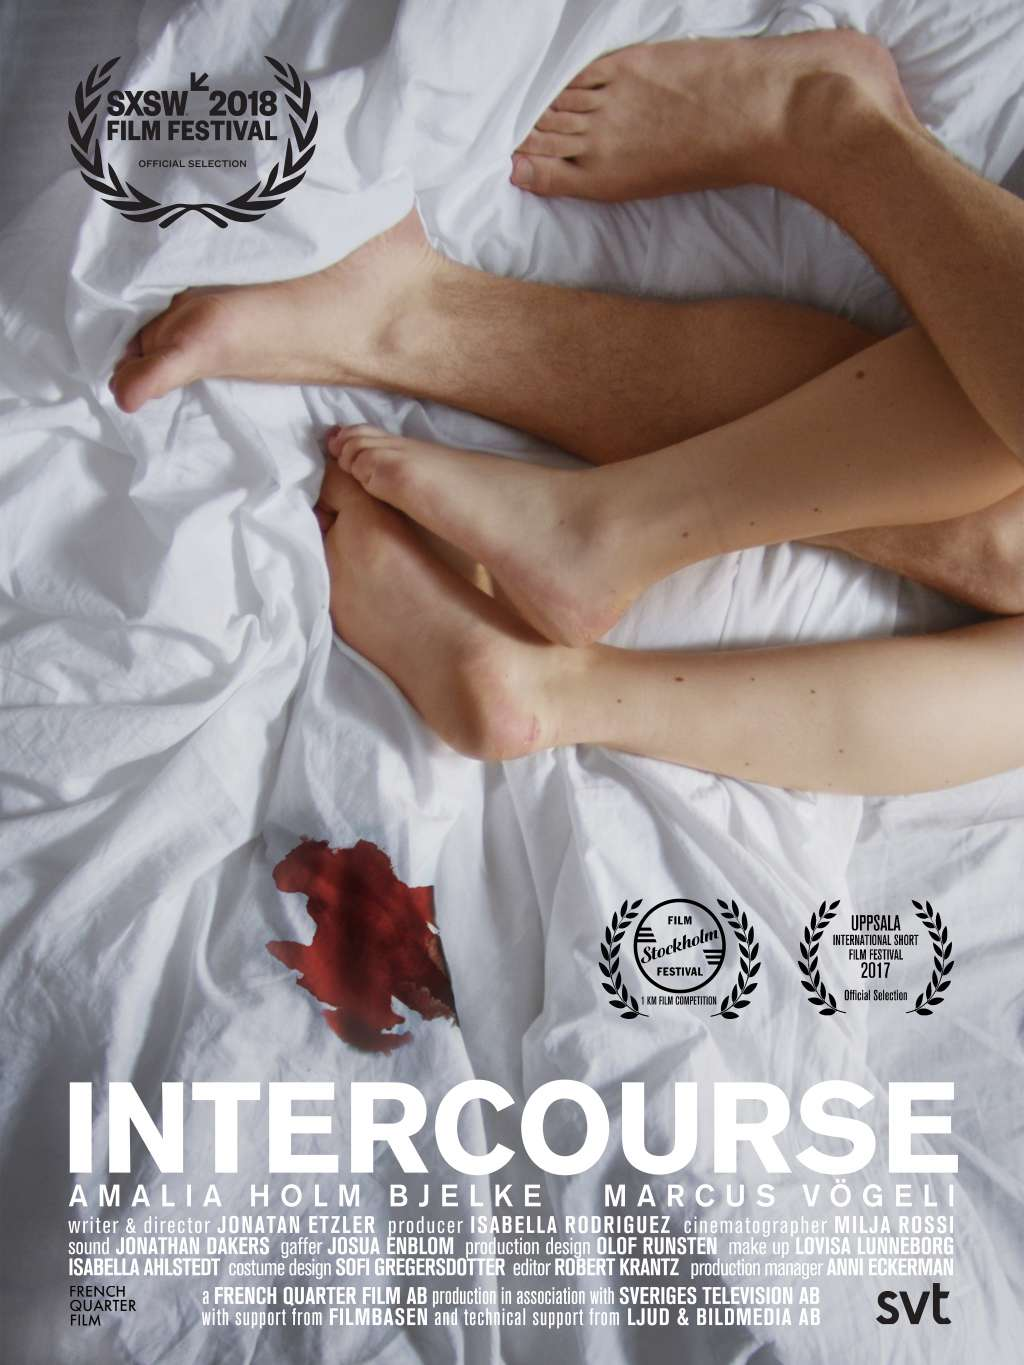 Intercourse kapak